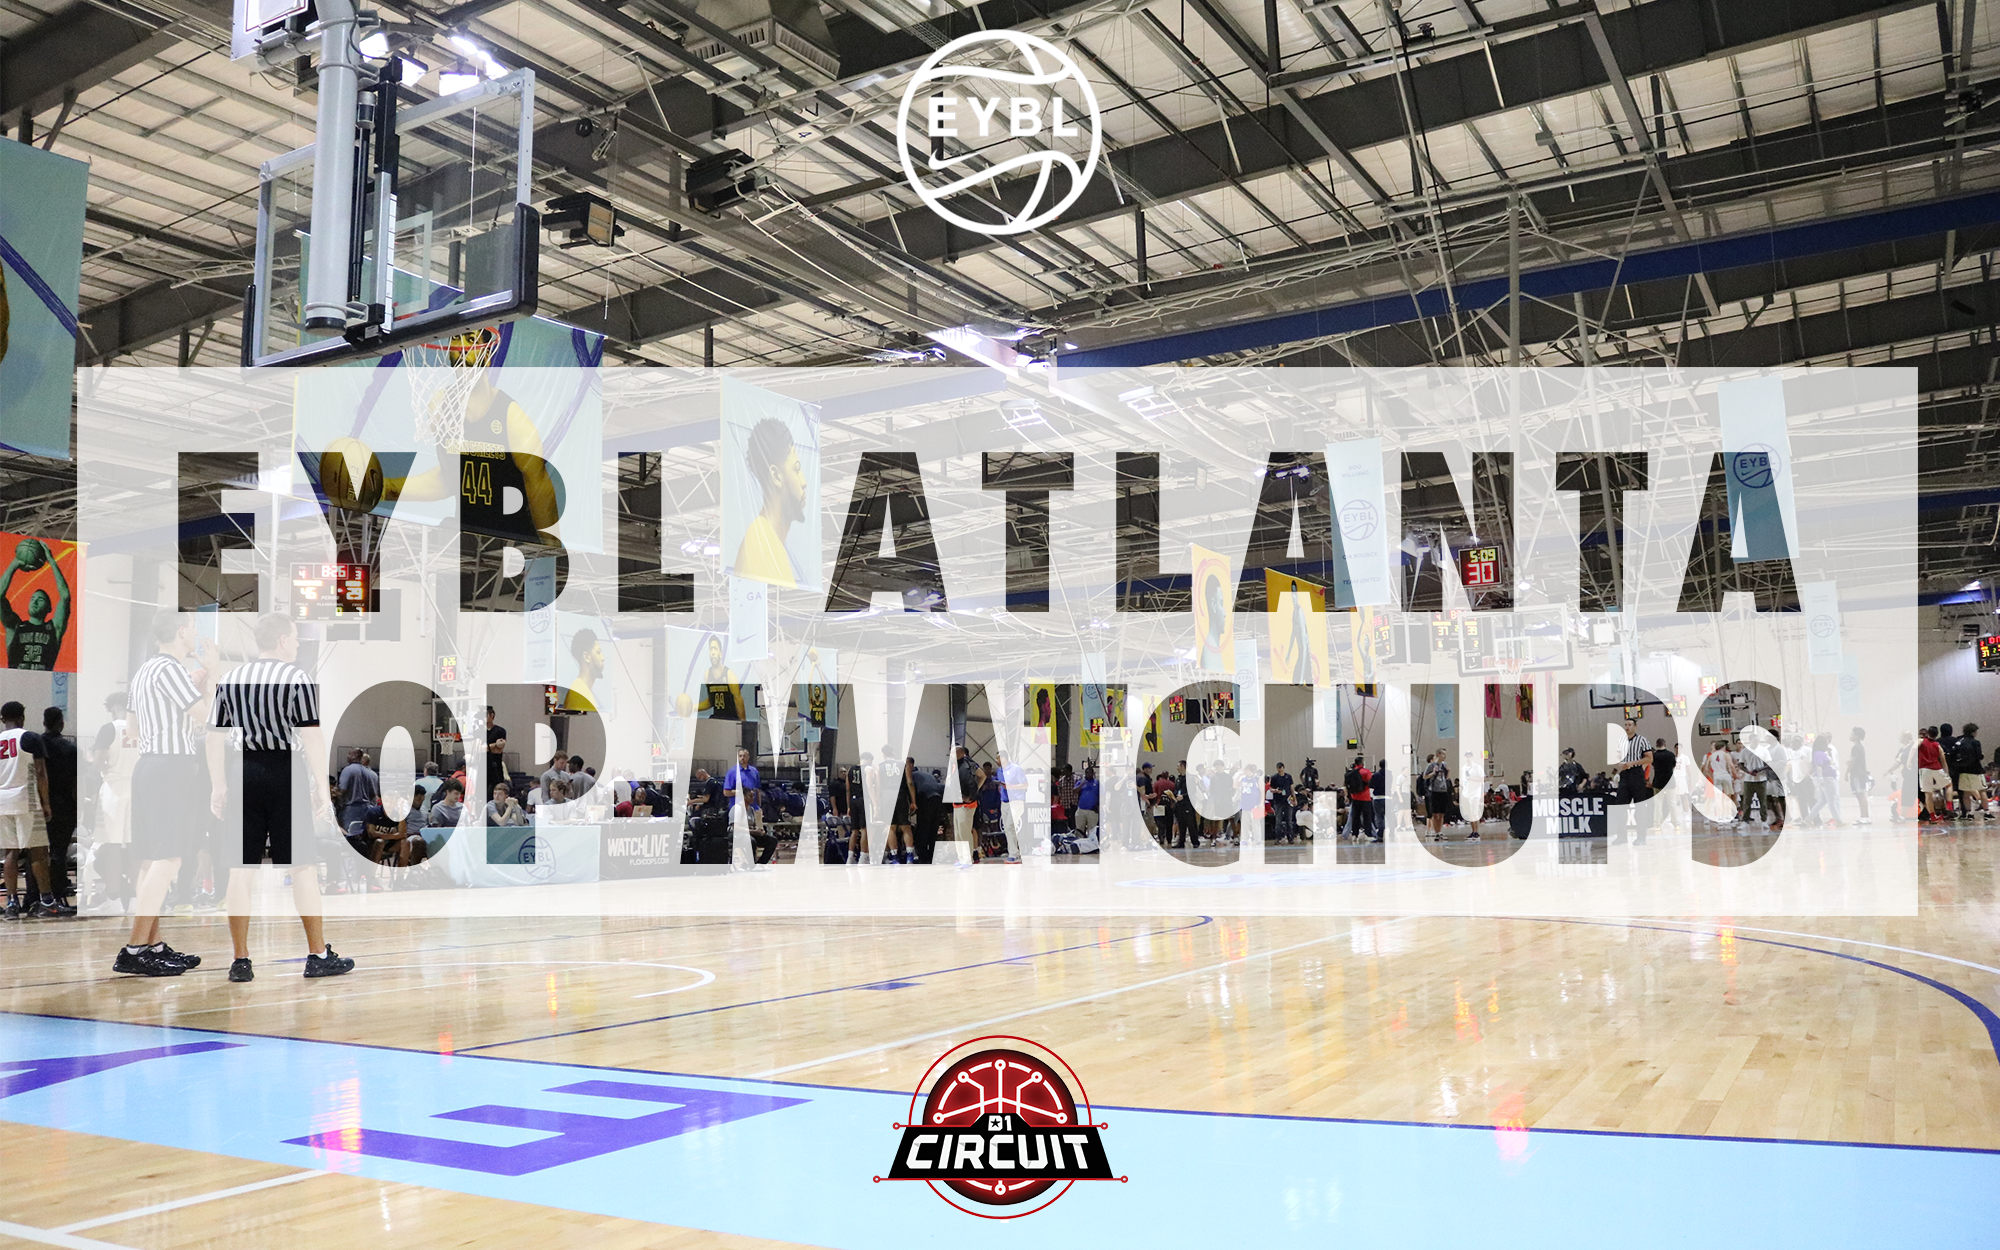 Nike Eybl Atlanta Best Matchups Buzzergameshowcircuitpng Session Three In Is Almost Among Us And This Typically The Circuit Stop That Separates Men From Boys